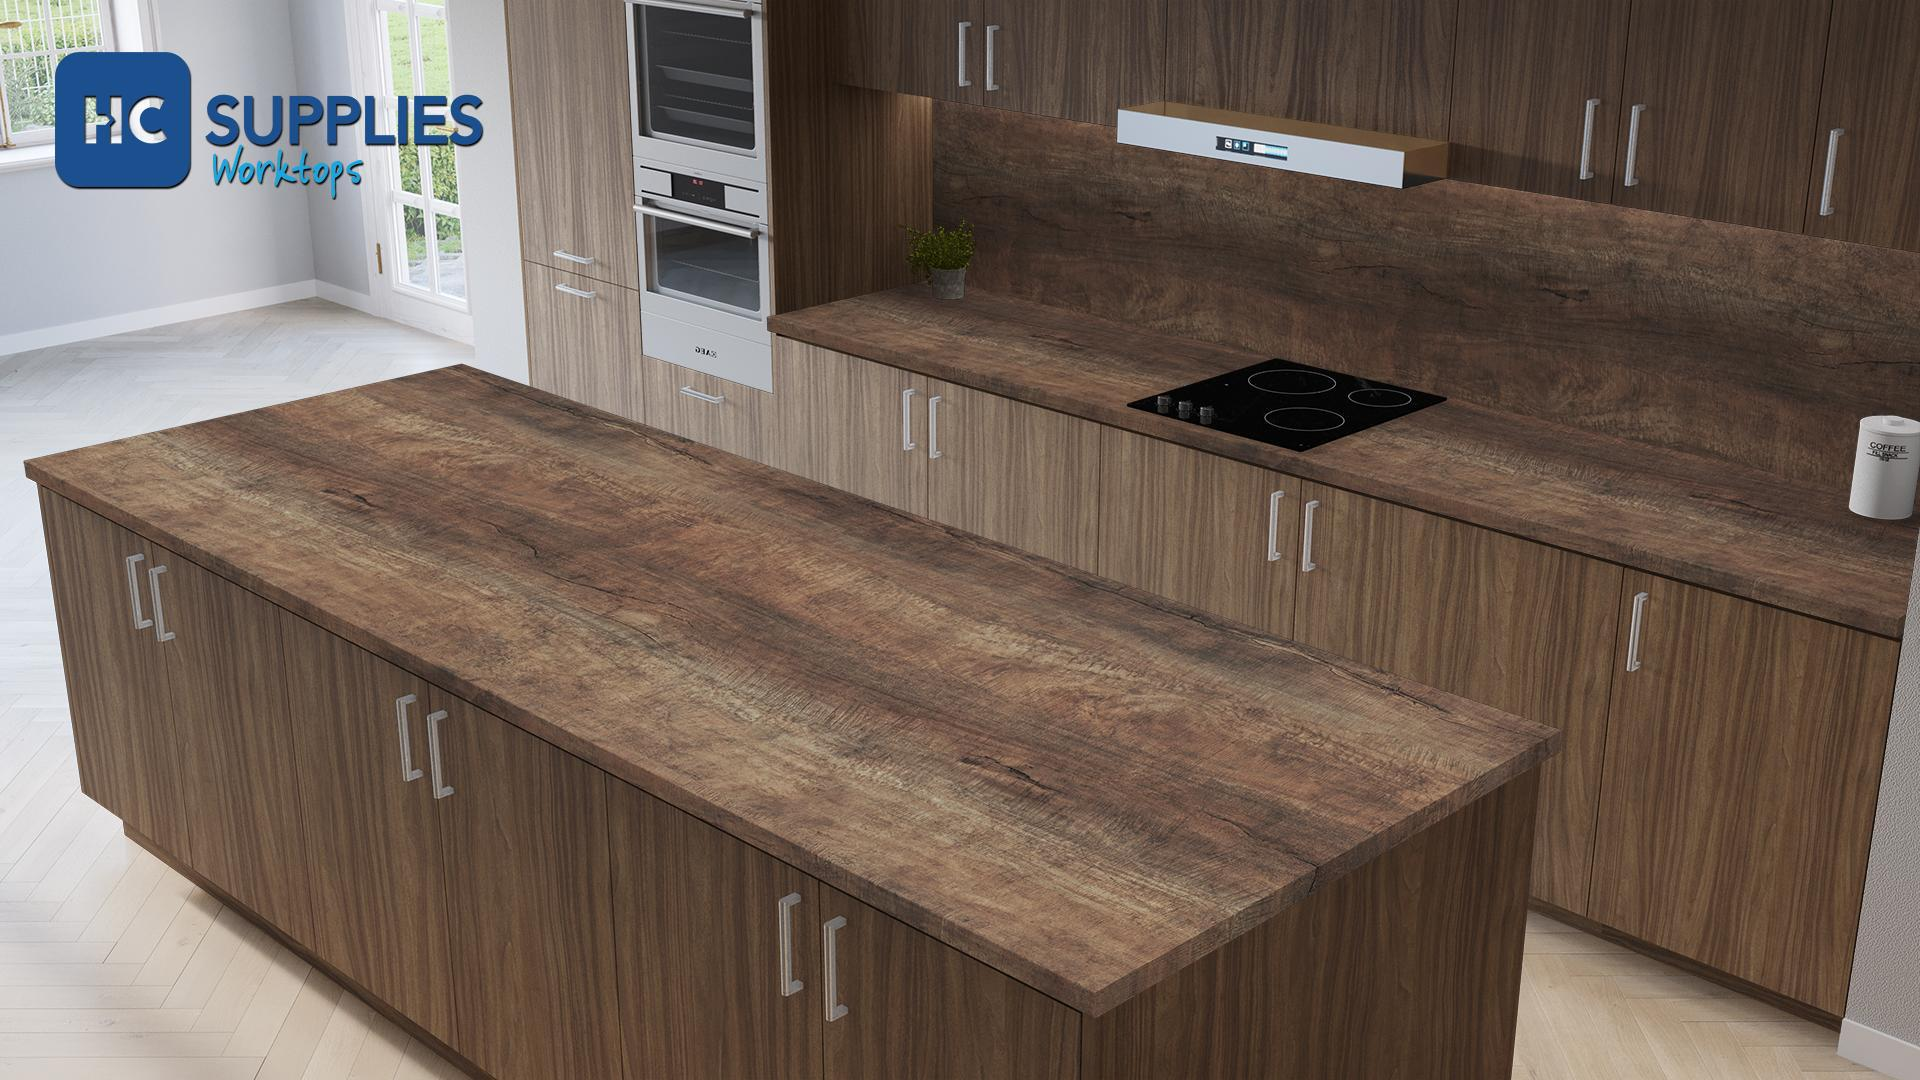 Axiom Thai Beamwood Puregrain  Worktop Product Image